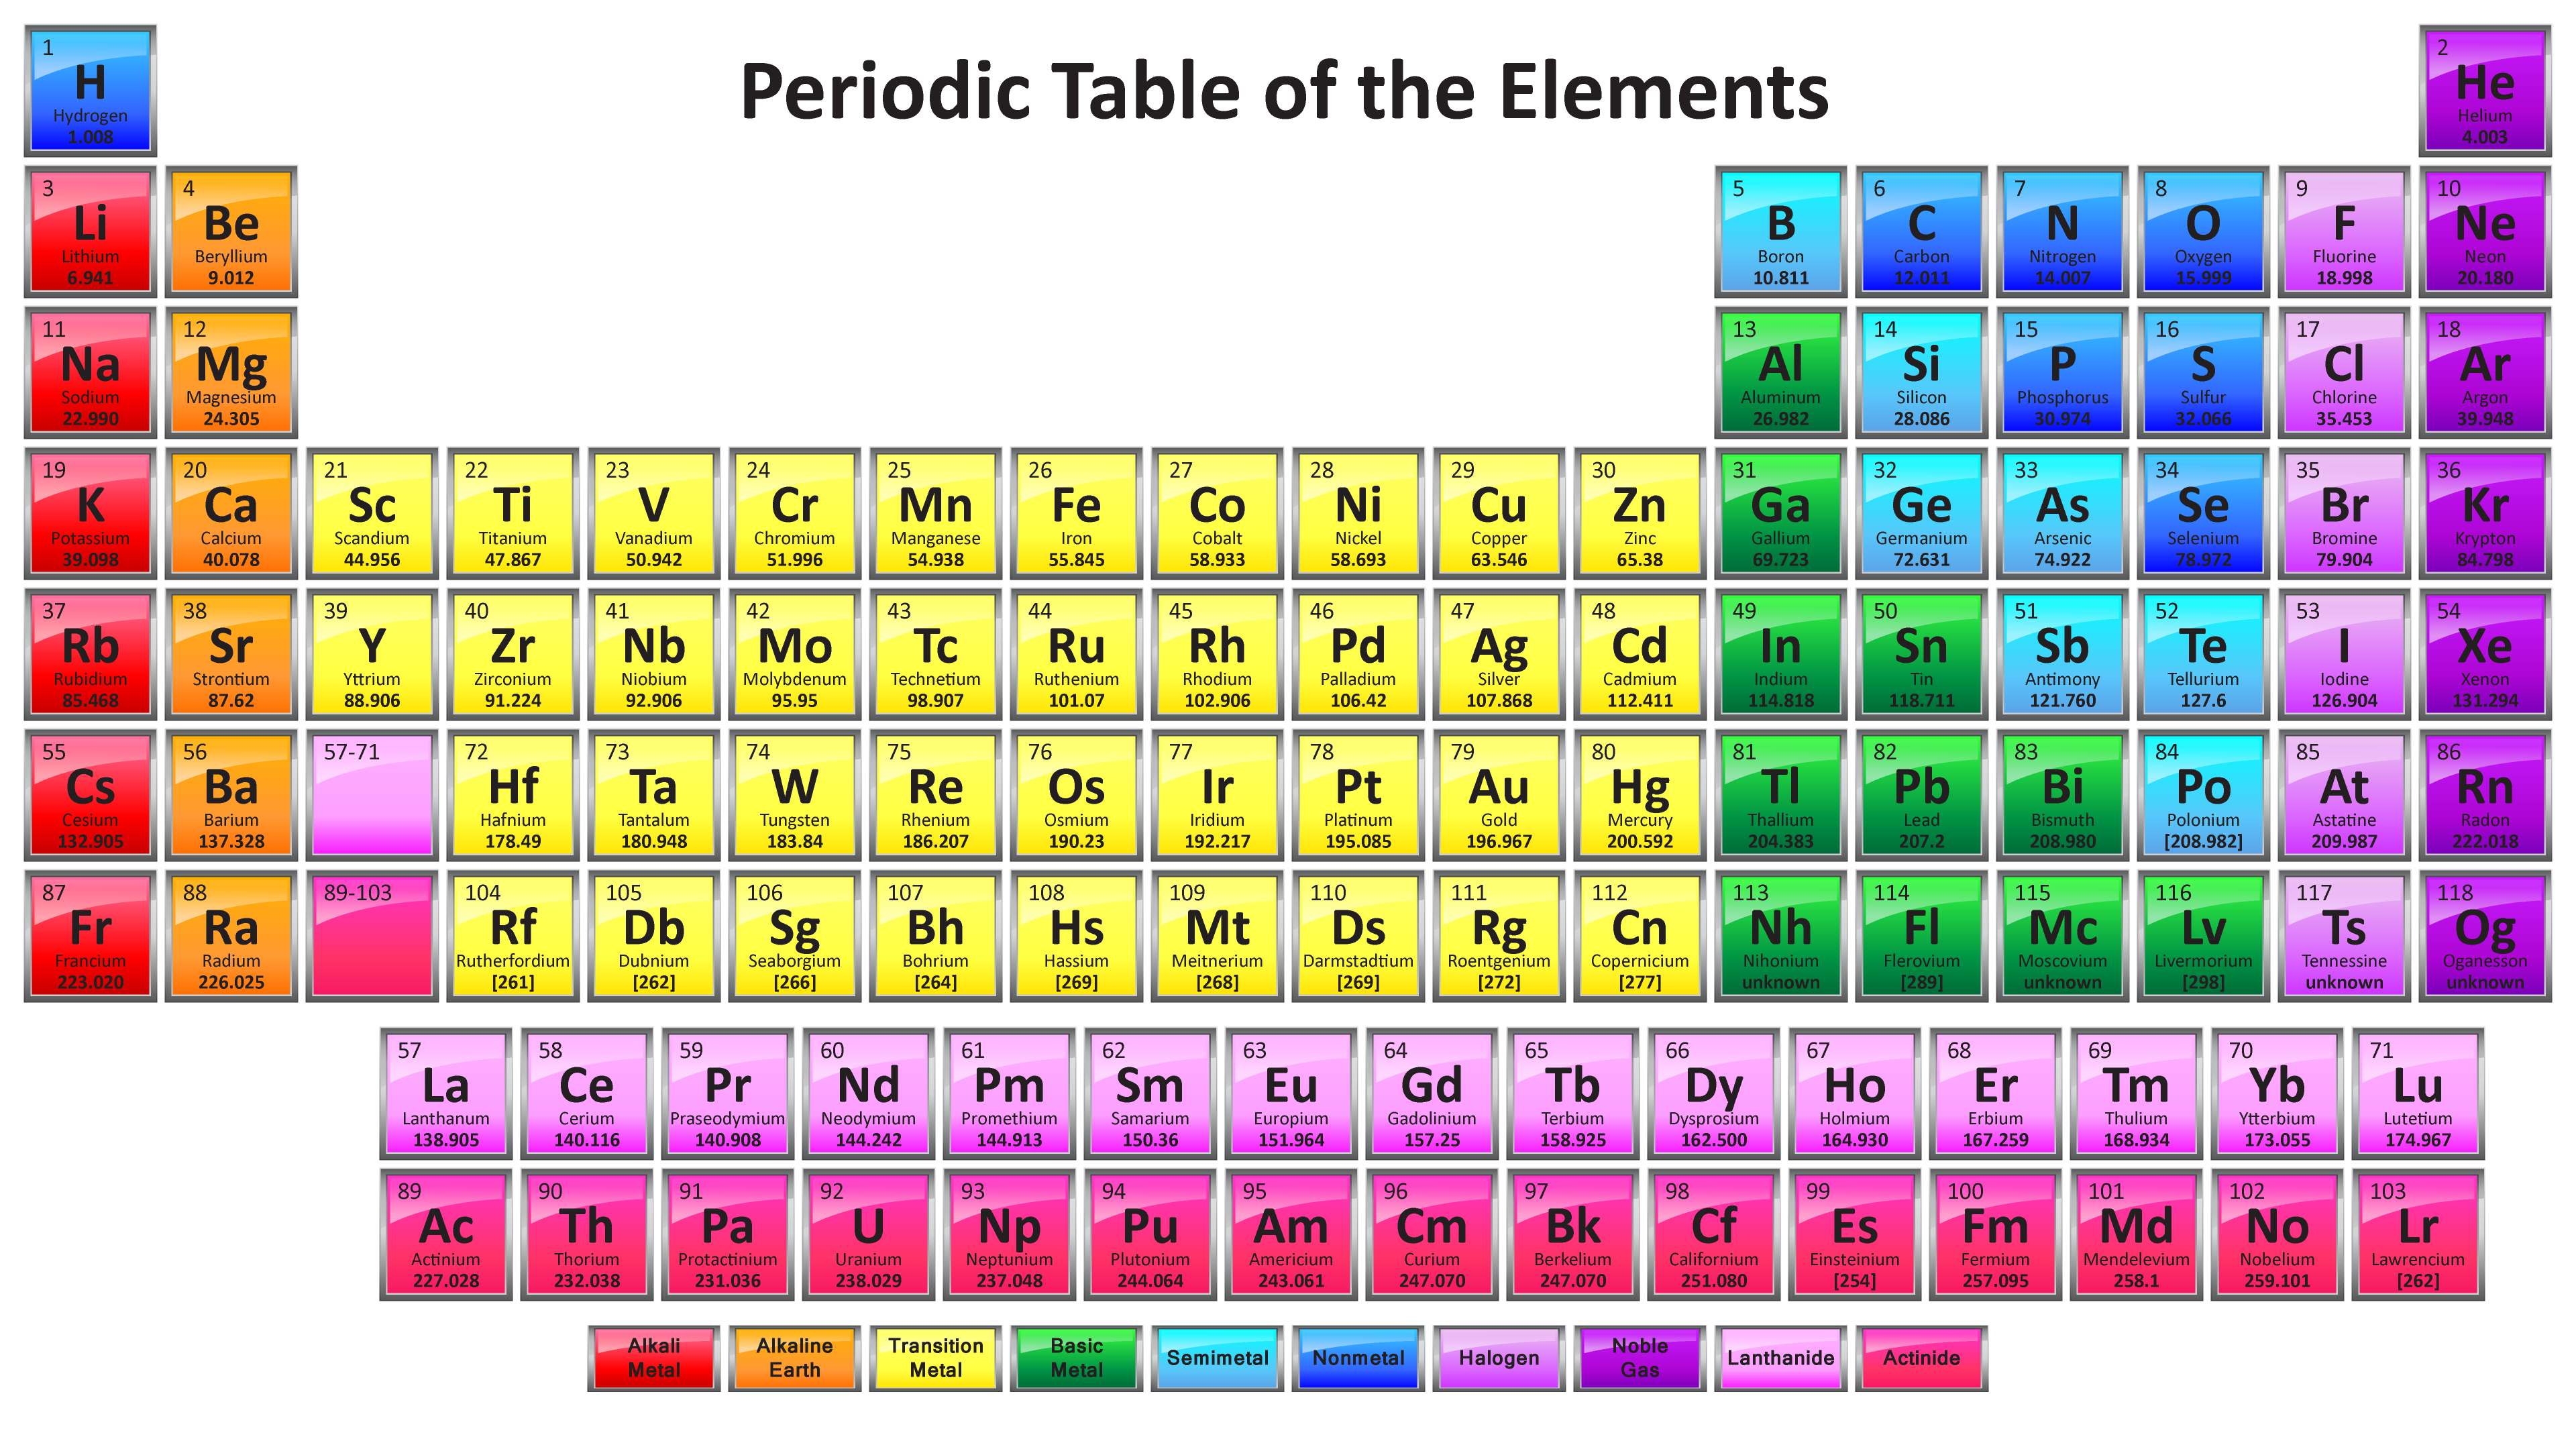 https://sciencenotes.org/wp-content/uploads/2016/07/ShinyPeriodicTable.png